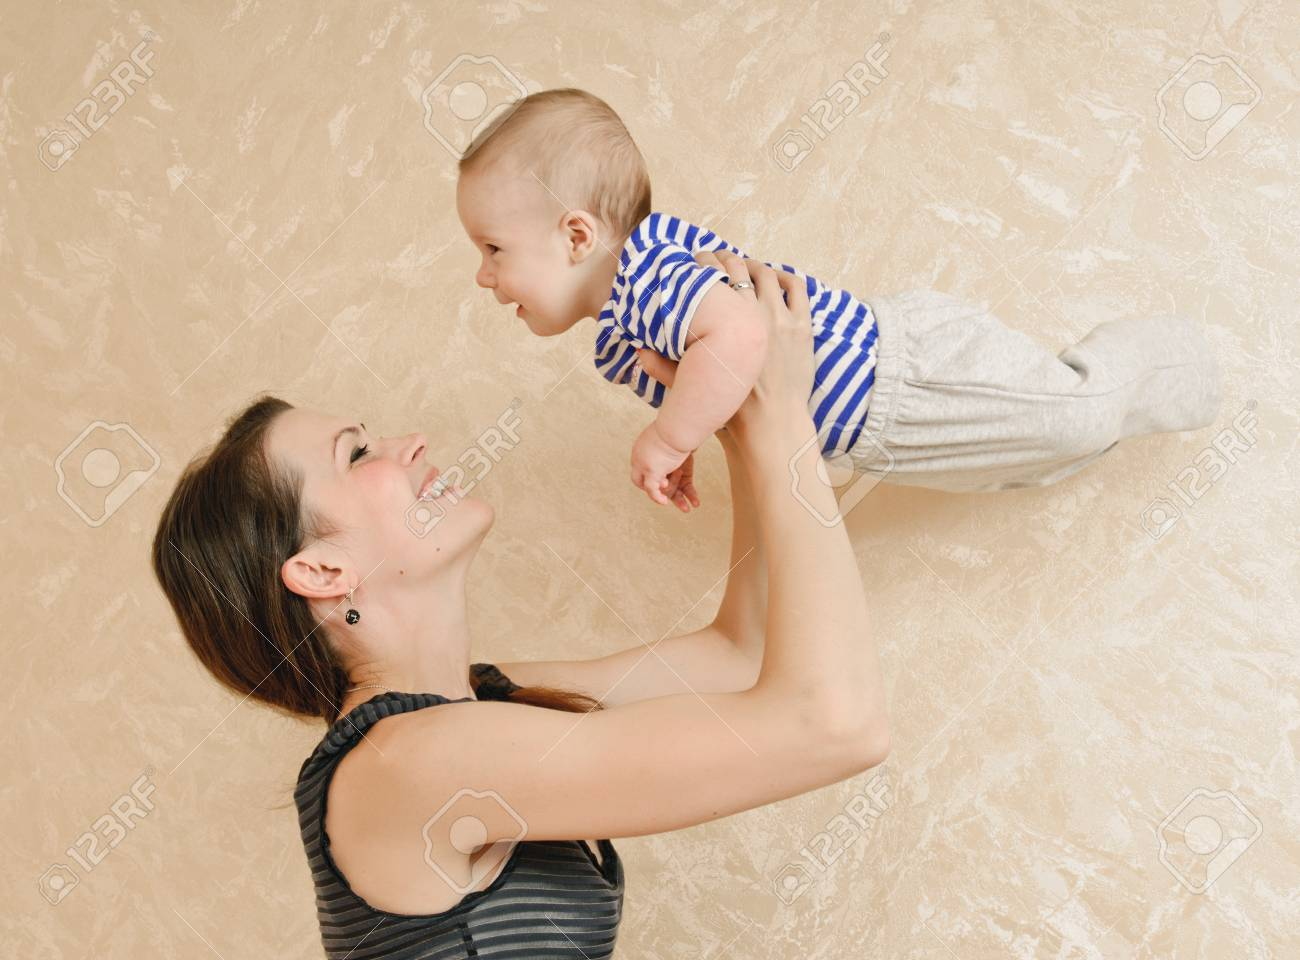 young mother and her baby in the room about wall with wall-paper Stock Photo - 13586190